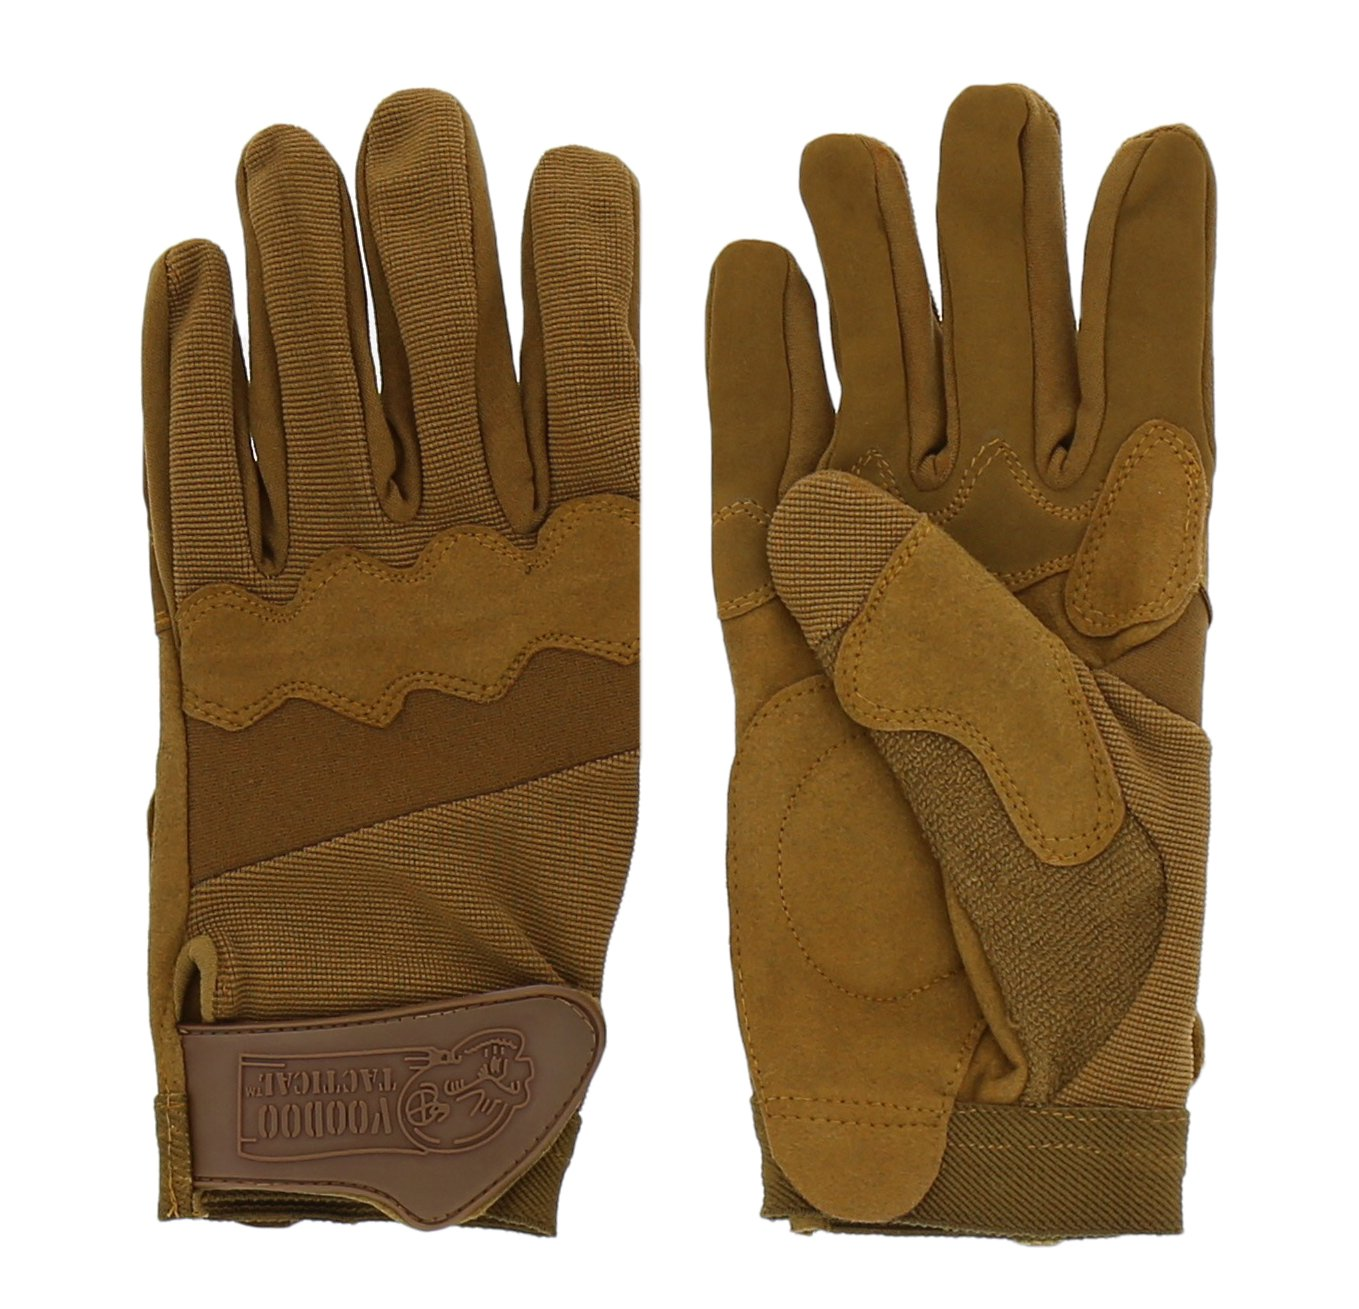 Voodoo Tactical 20-9077001097 The Edge Shooter's Gloves 20-9077001097-P